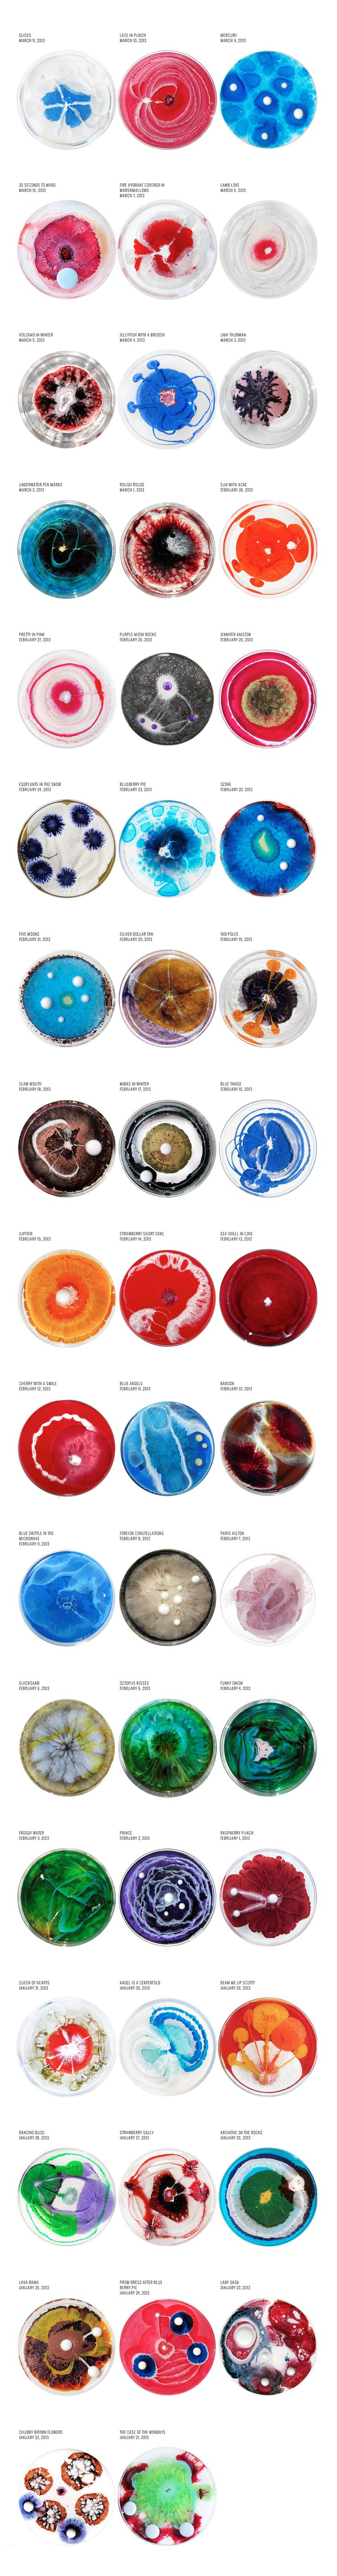 The Daily Dish 2013 — Amazing petri dish painting by Klari Reis